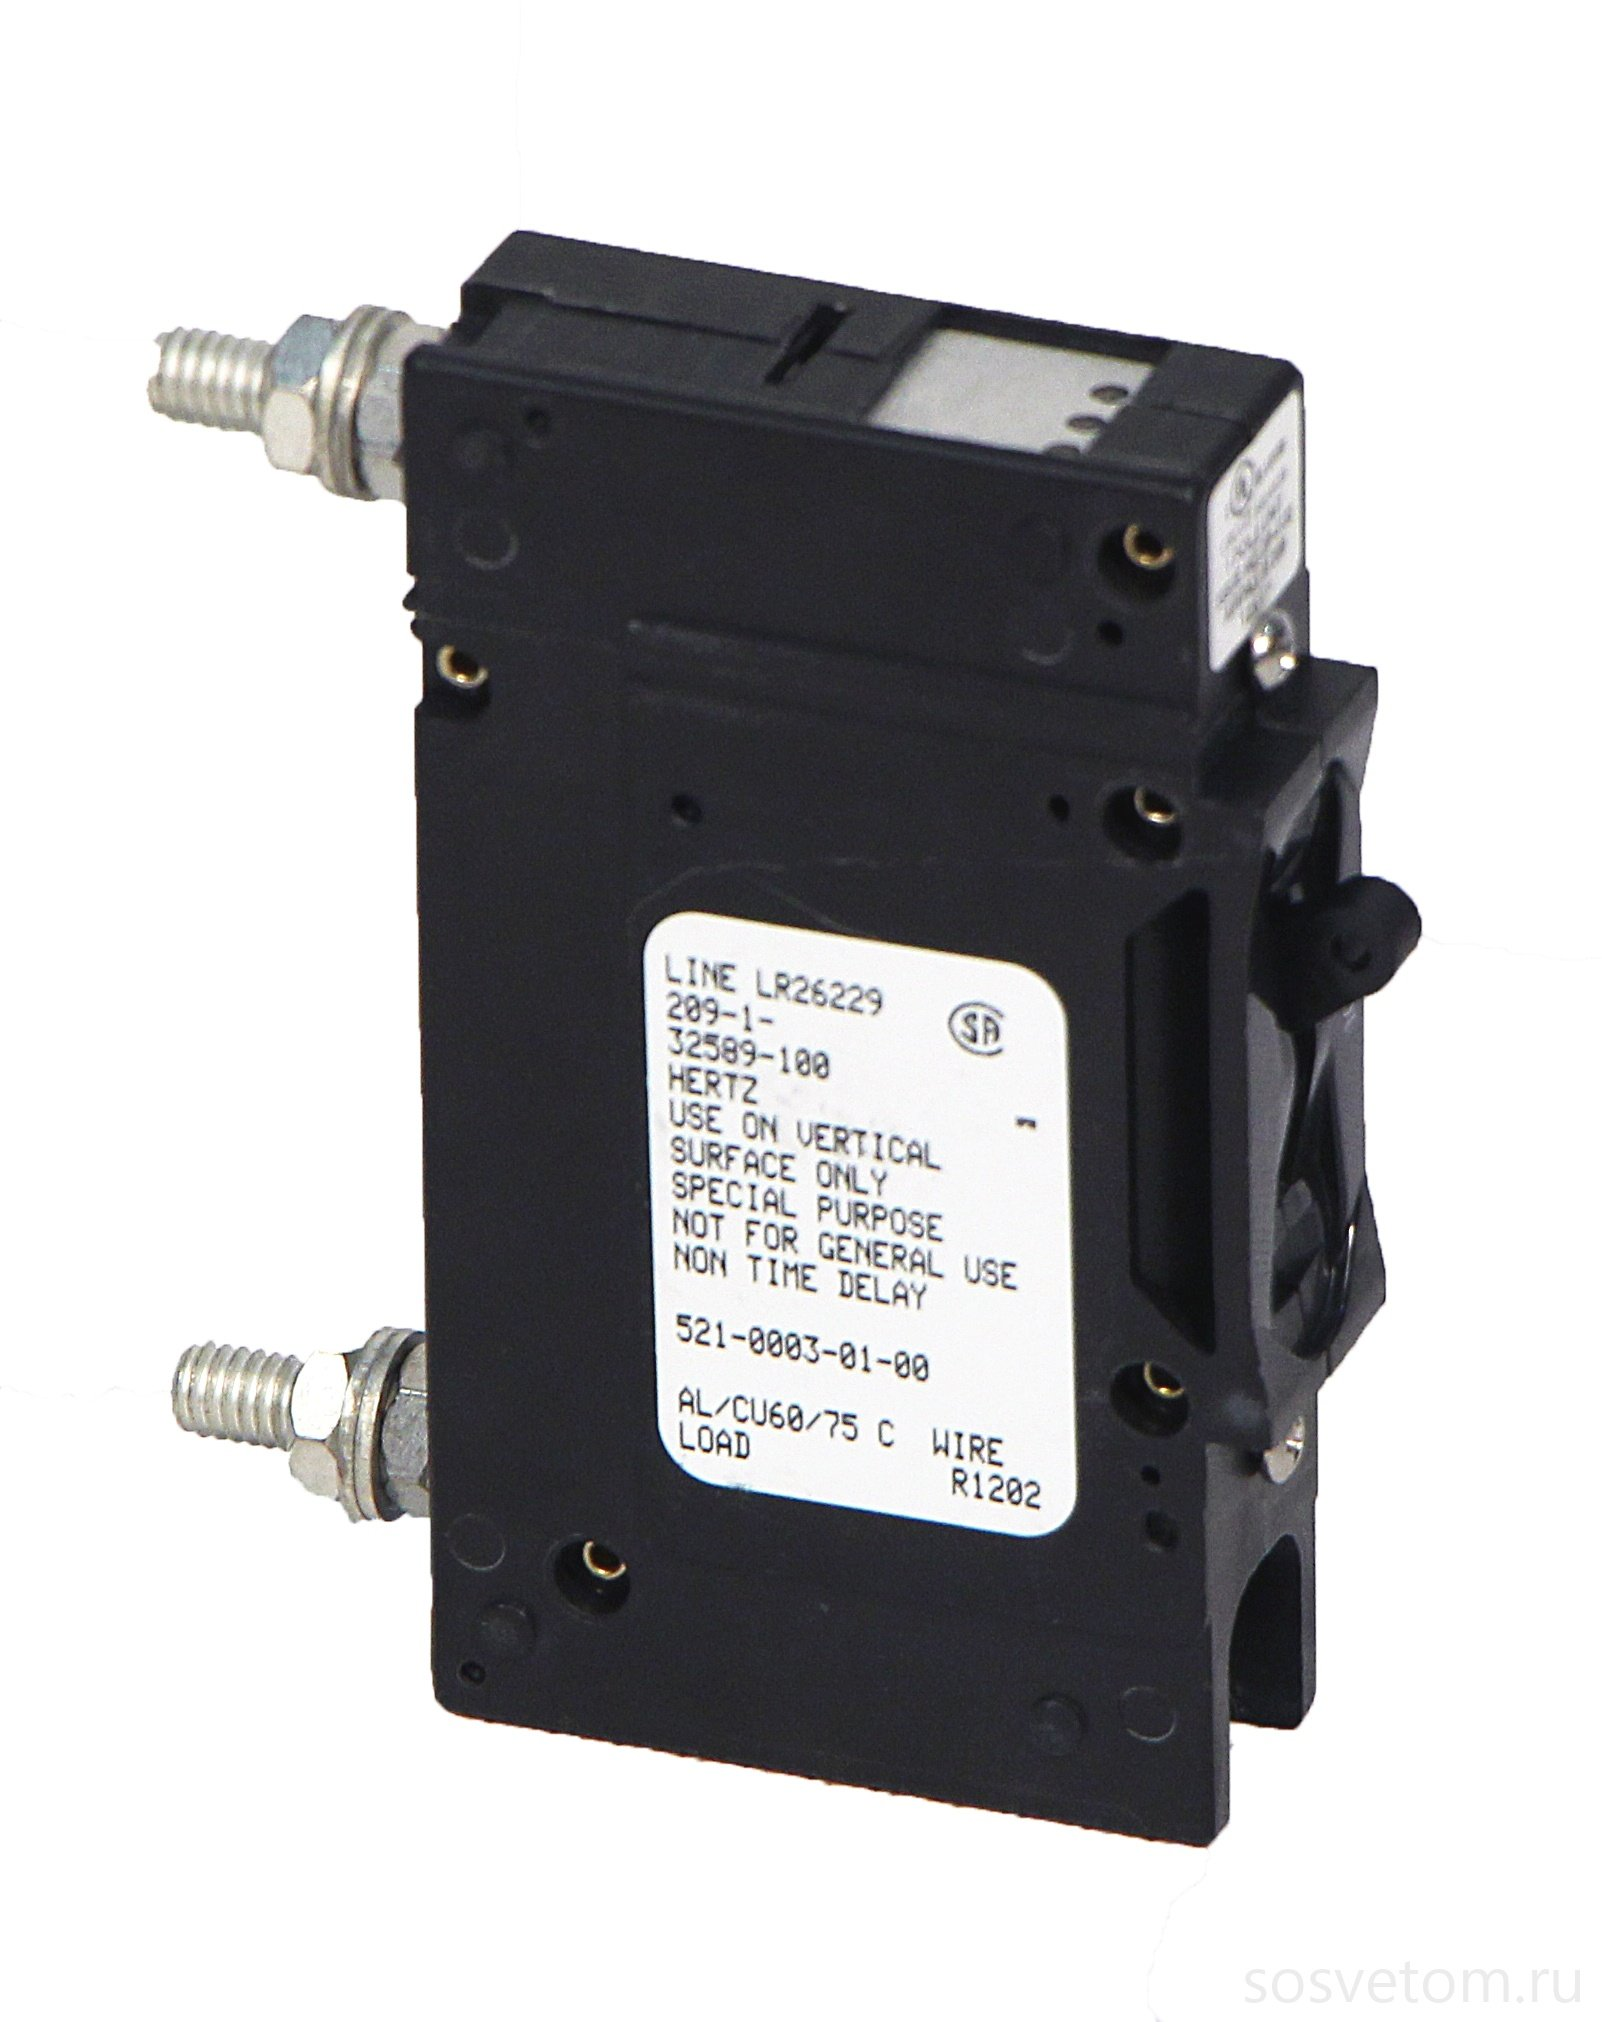 Outback-PNL-100-DC - 100 Amp Panel Mount DC Rated Breaker by Outback Power Systems